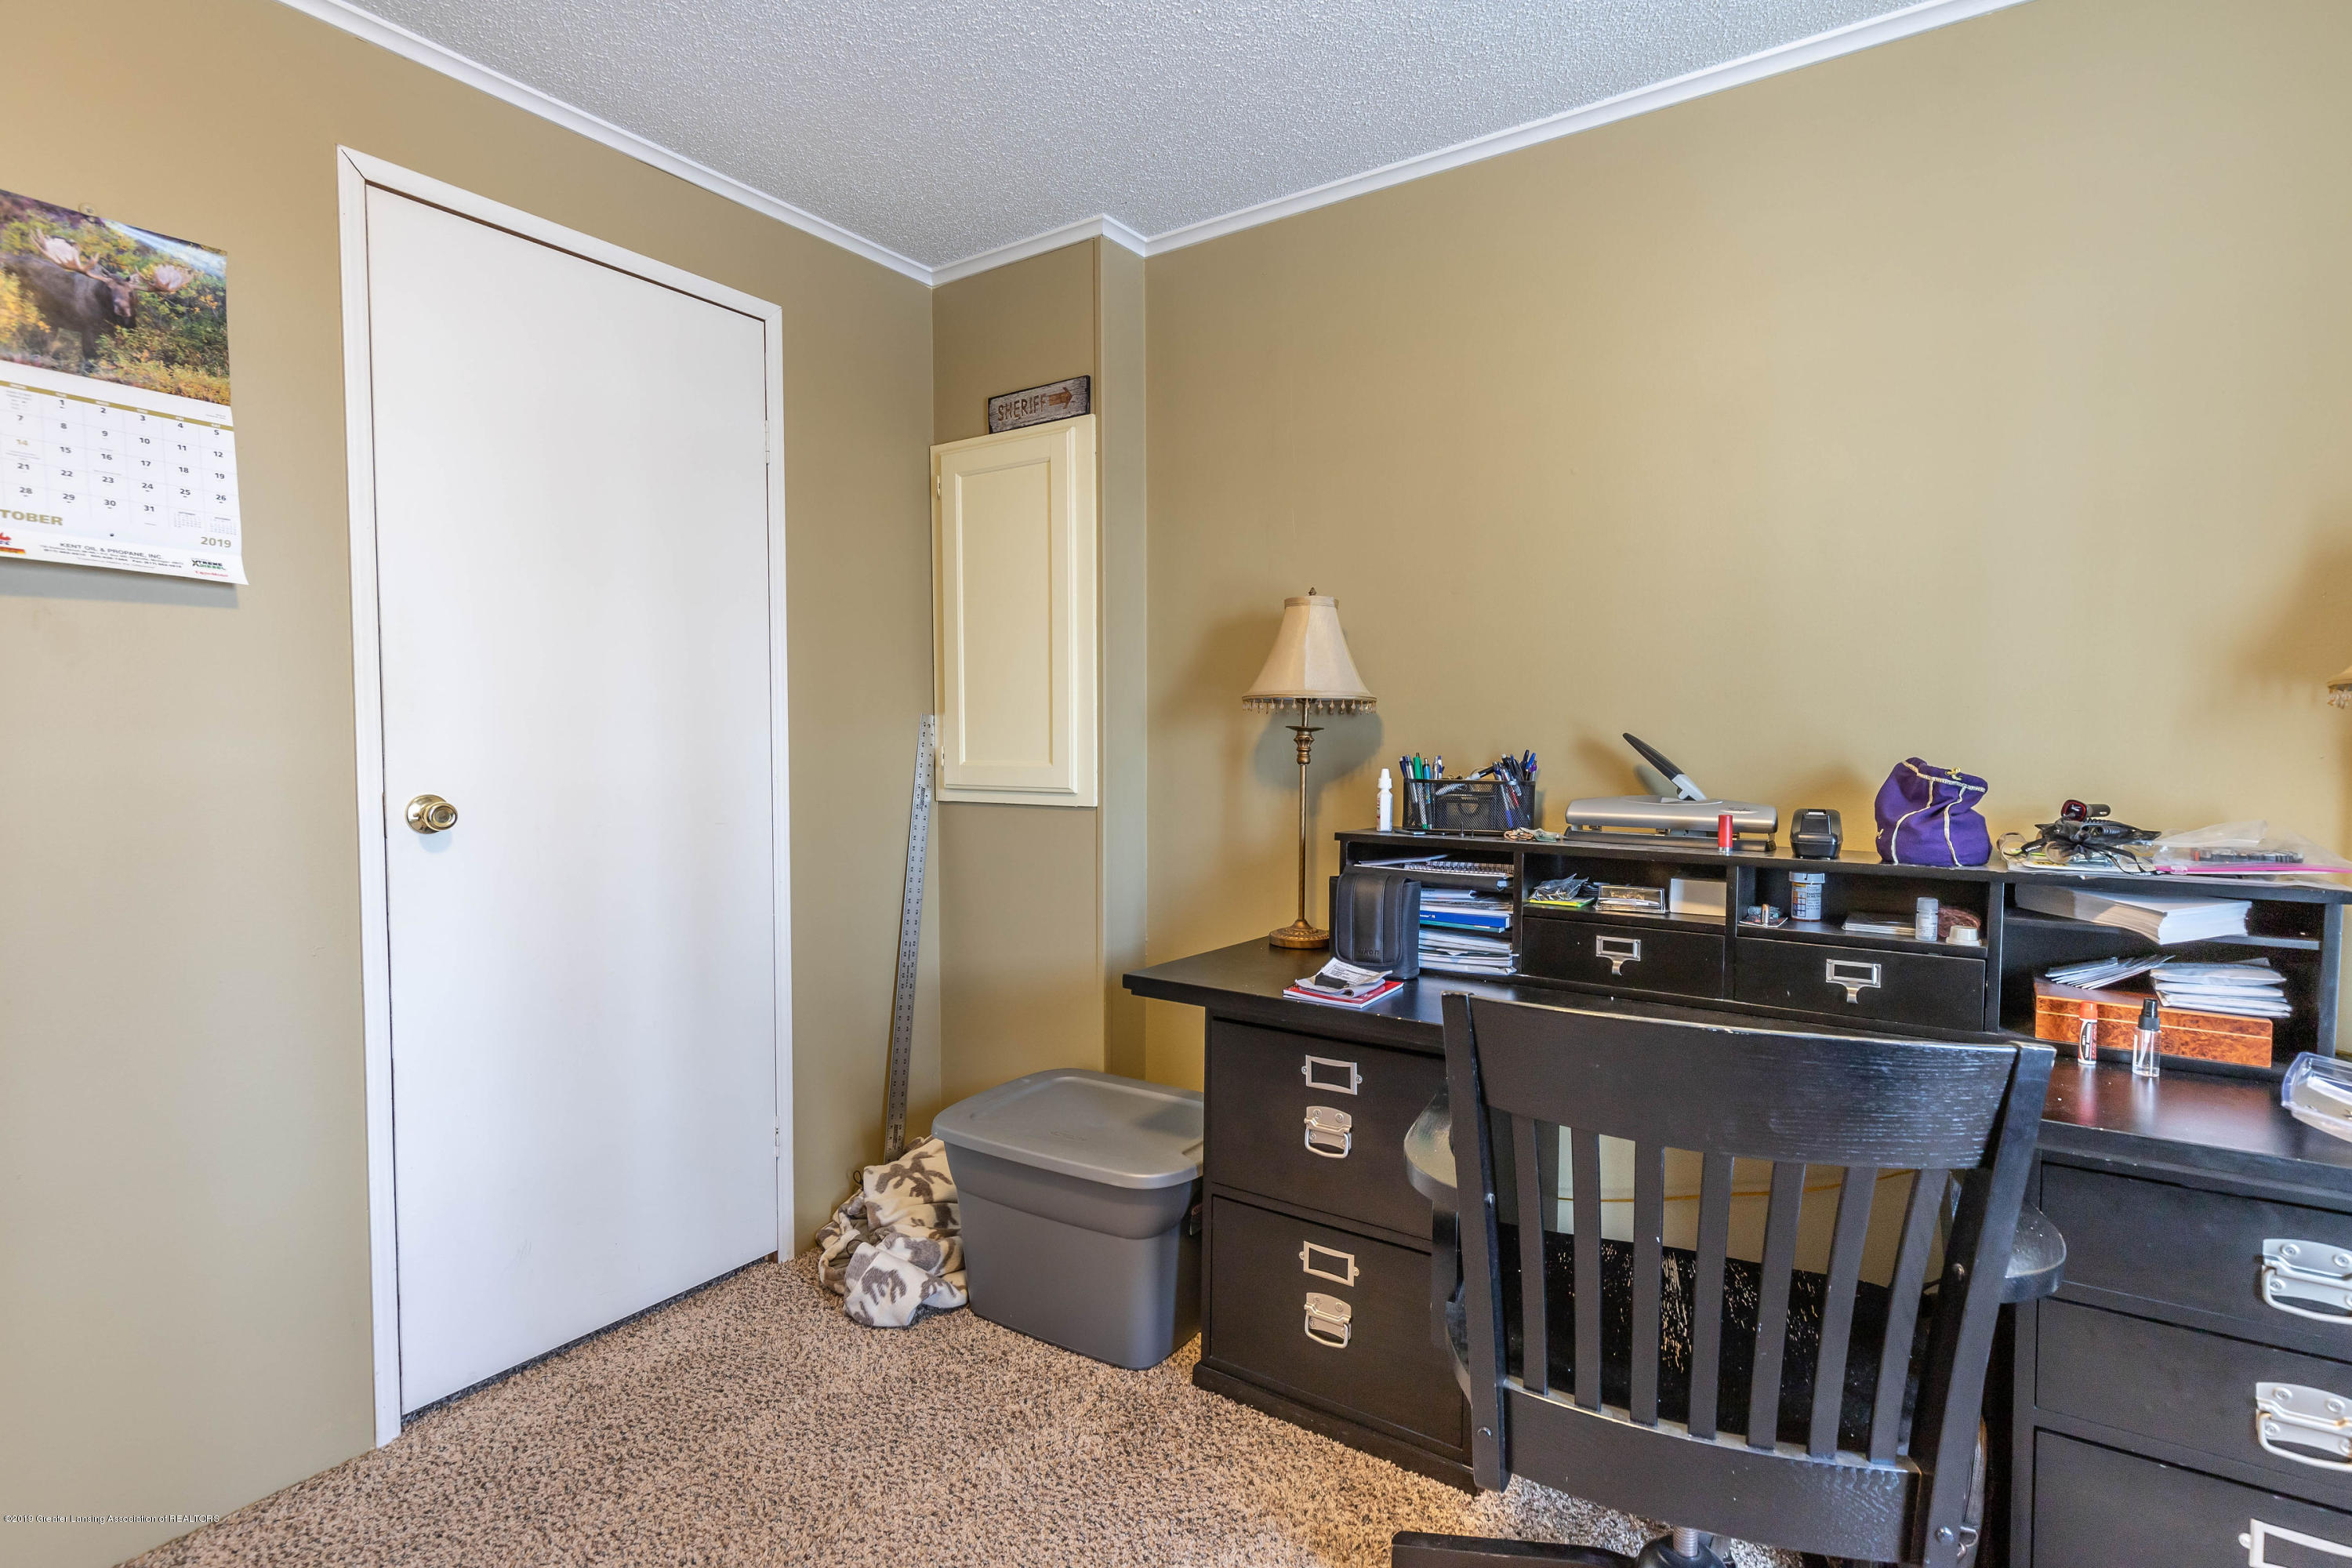 1504 S Chester Rd - chesterbed21(1of1) - 24